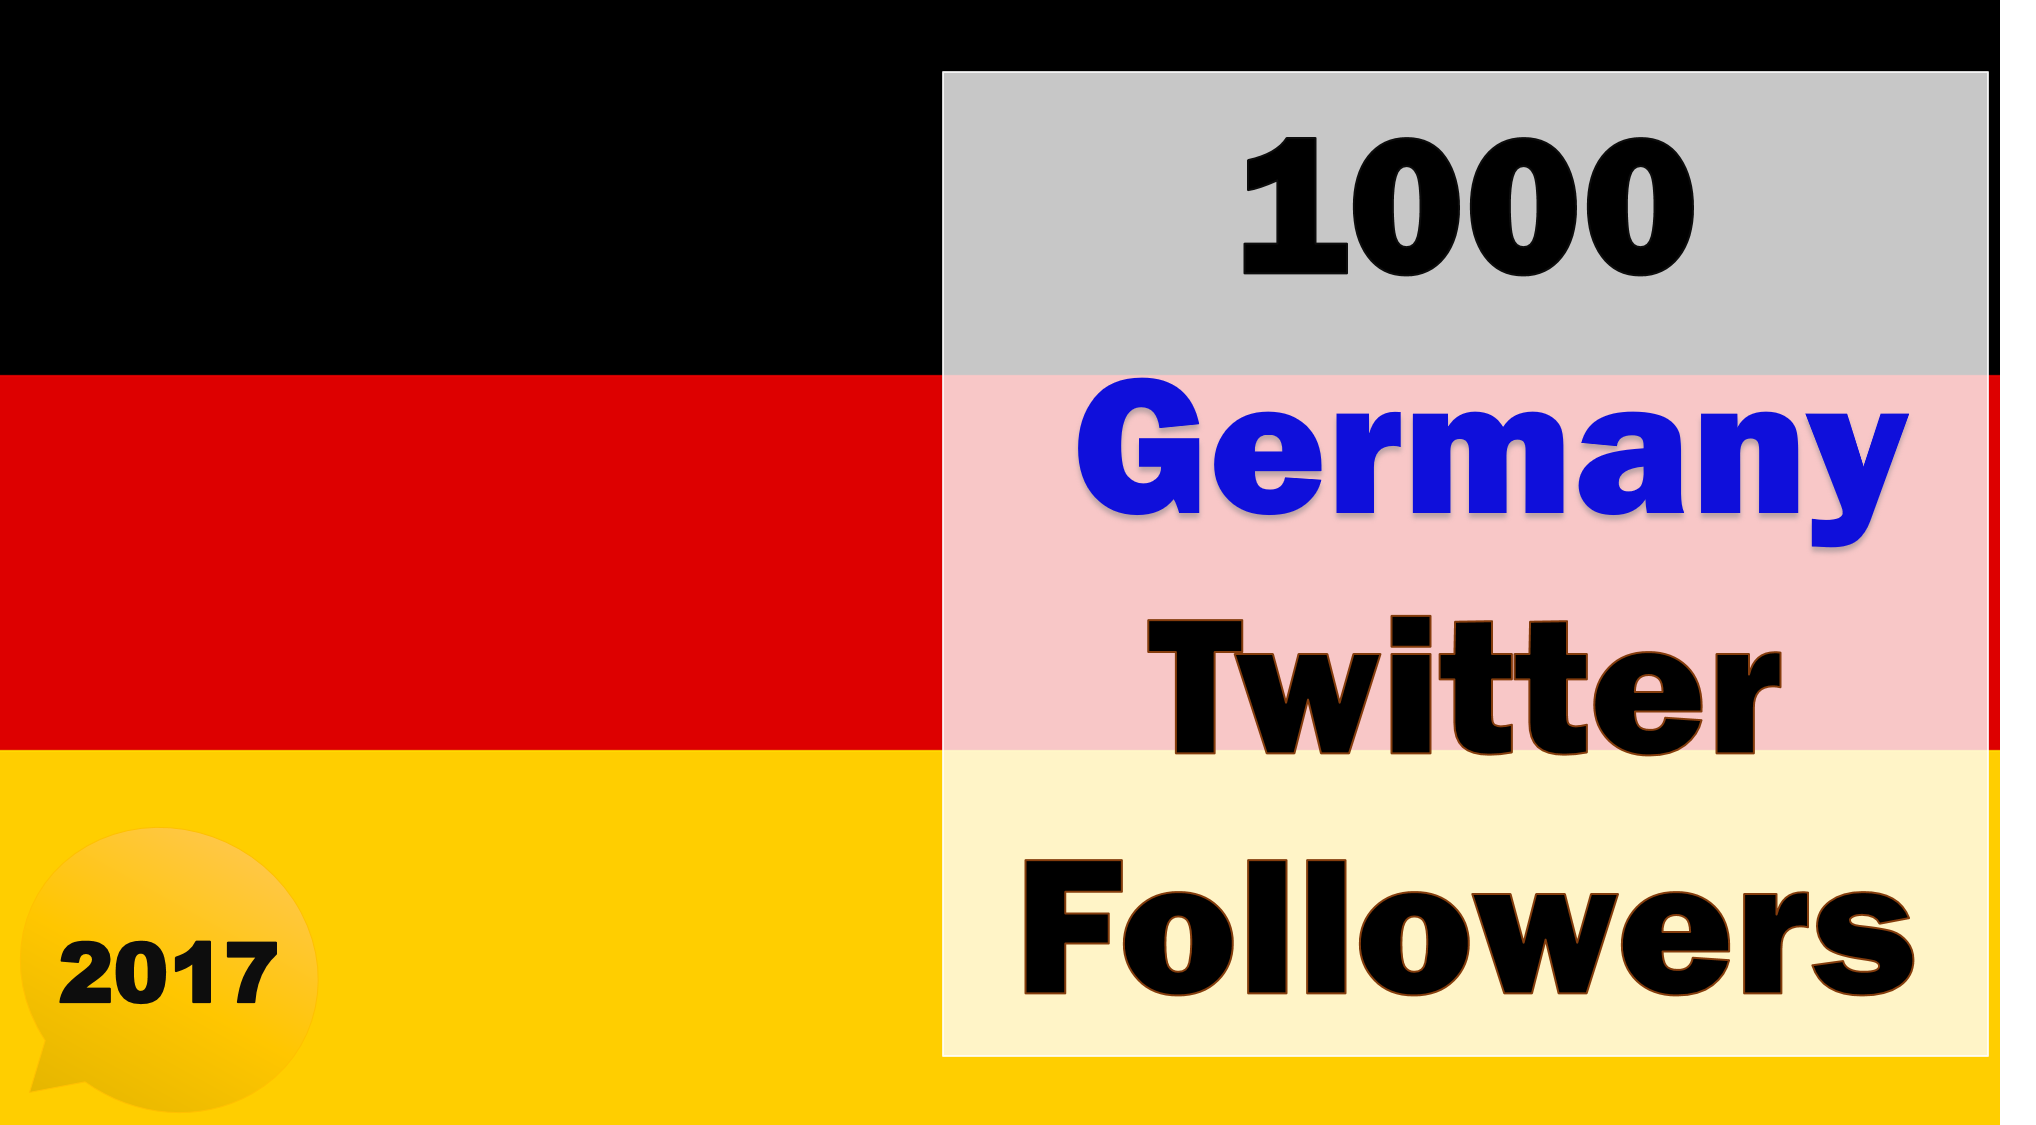 Promote and Provide 1000 Germany Twitter Followers